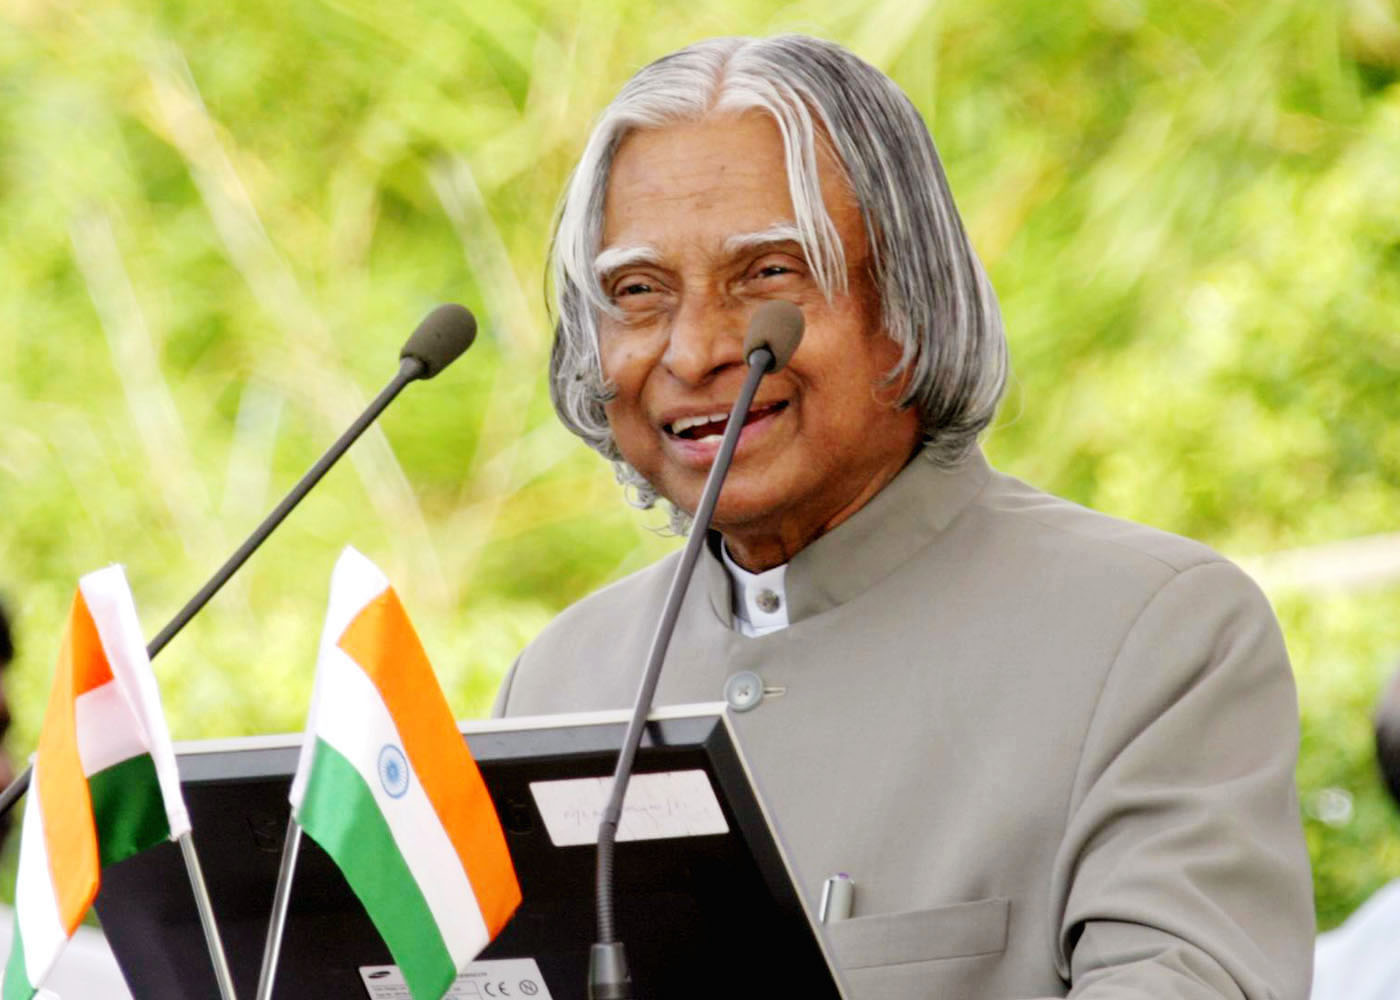 when did apj abdul kalam died Top 10 facts you did not know about apj abdul kalam apj abdul kalam grew up in poverty and distributed newspapers as a young boy to contribute to his father's meager income he was a protégé of the great indian scientist dr vikram sarabhai who guided him and gave him valuable advice.